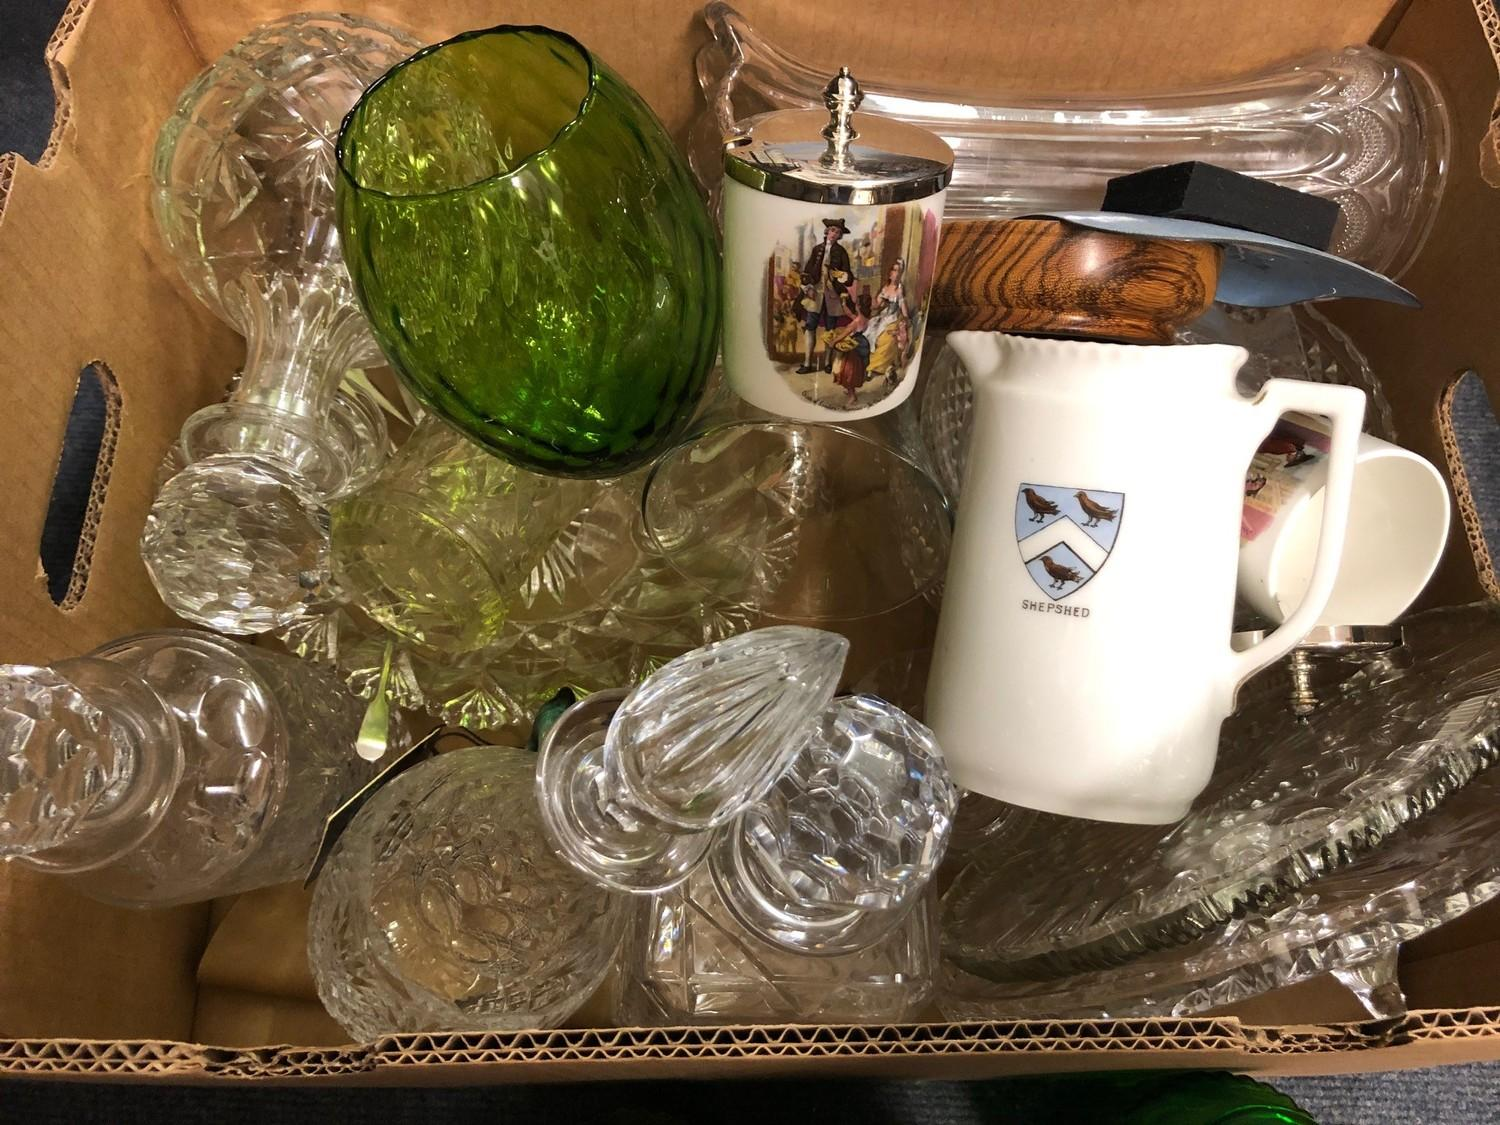 Three early 20th century green glass apothecary bottles, and other glassware (box) - Image 2 of 2